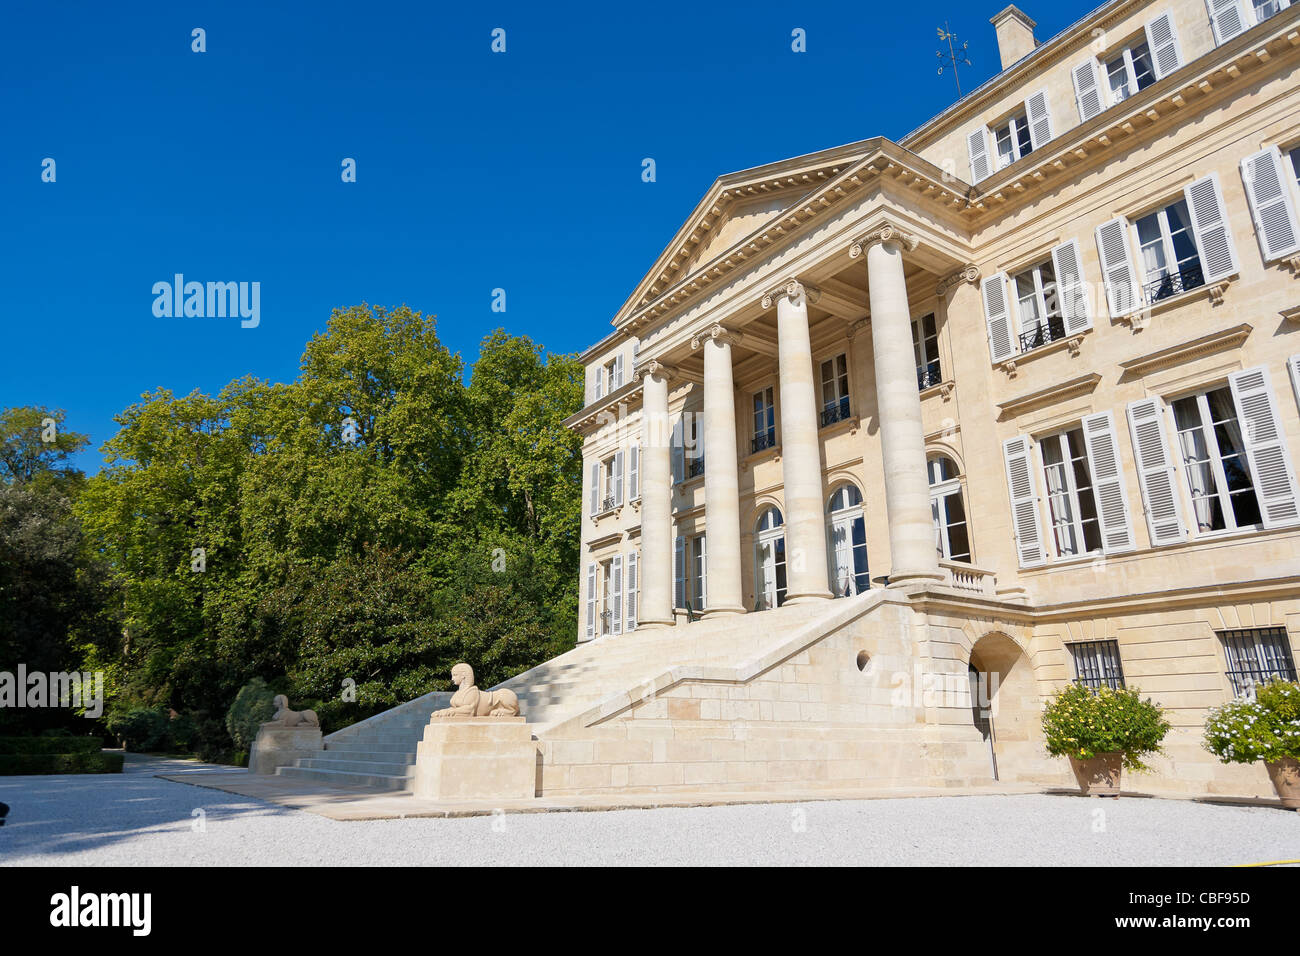 Facade of the Château Margaux., The Château Margaux wine waits 25 months in wooden barrel, from various - Stock Image